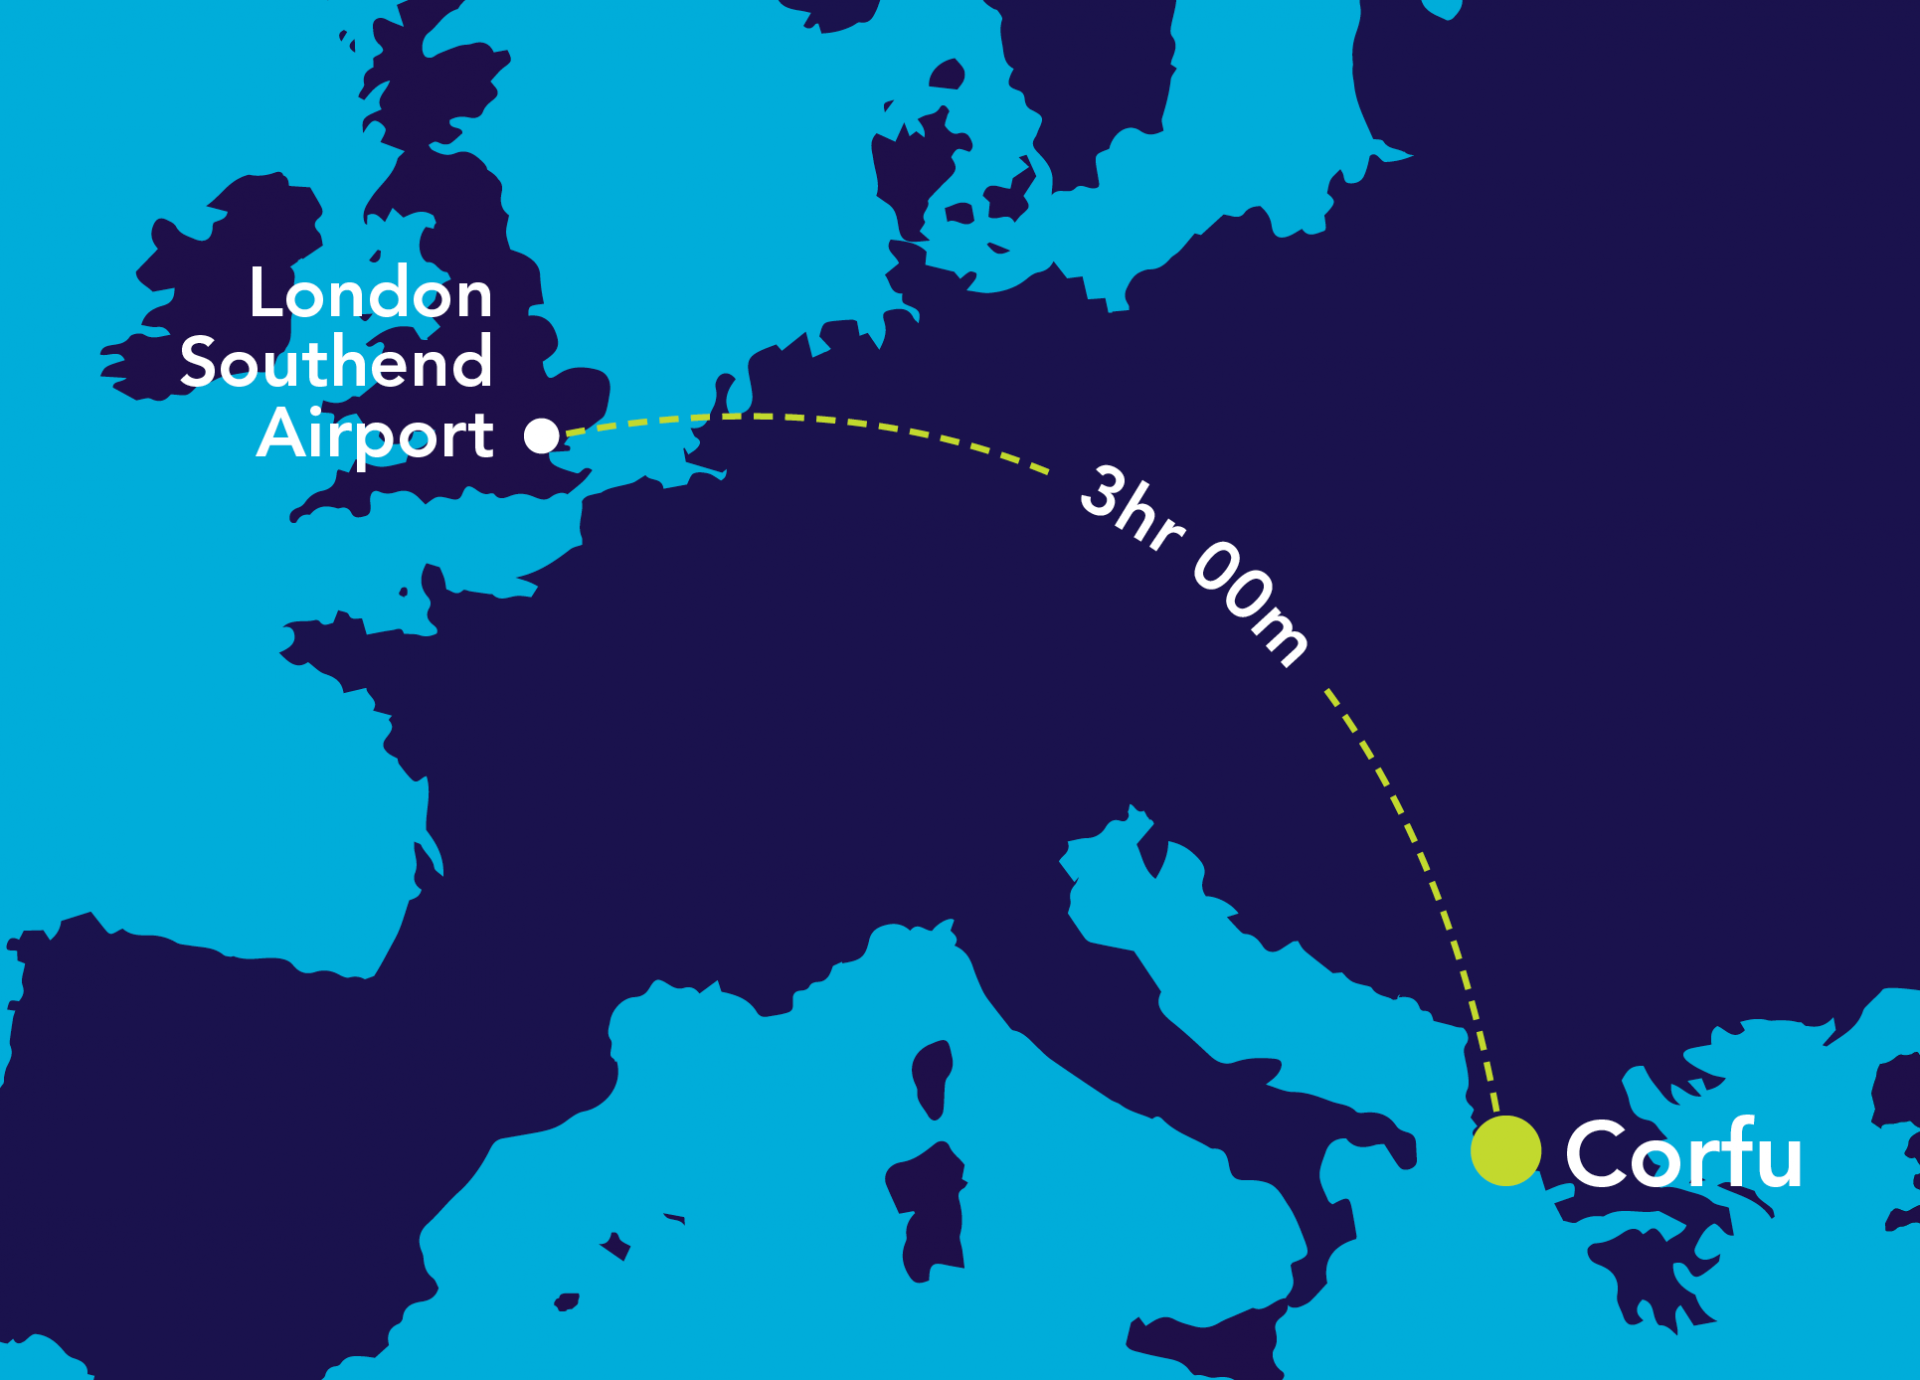 Image of map from London Southend Airport to Corfu